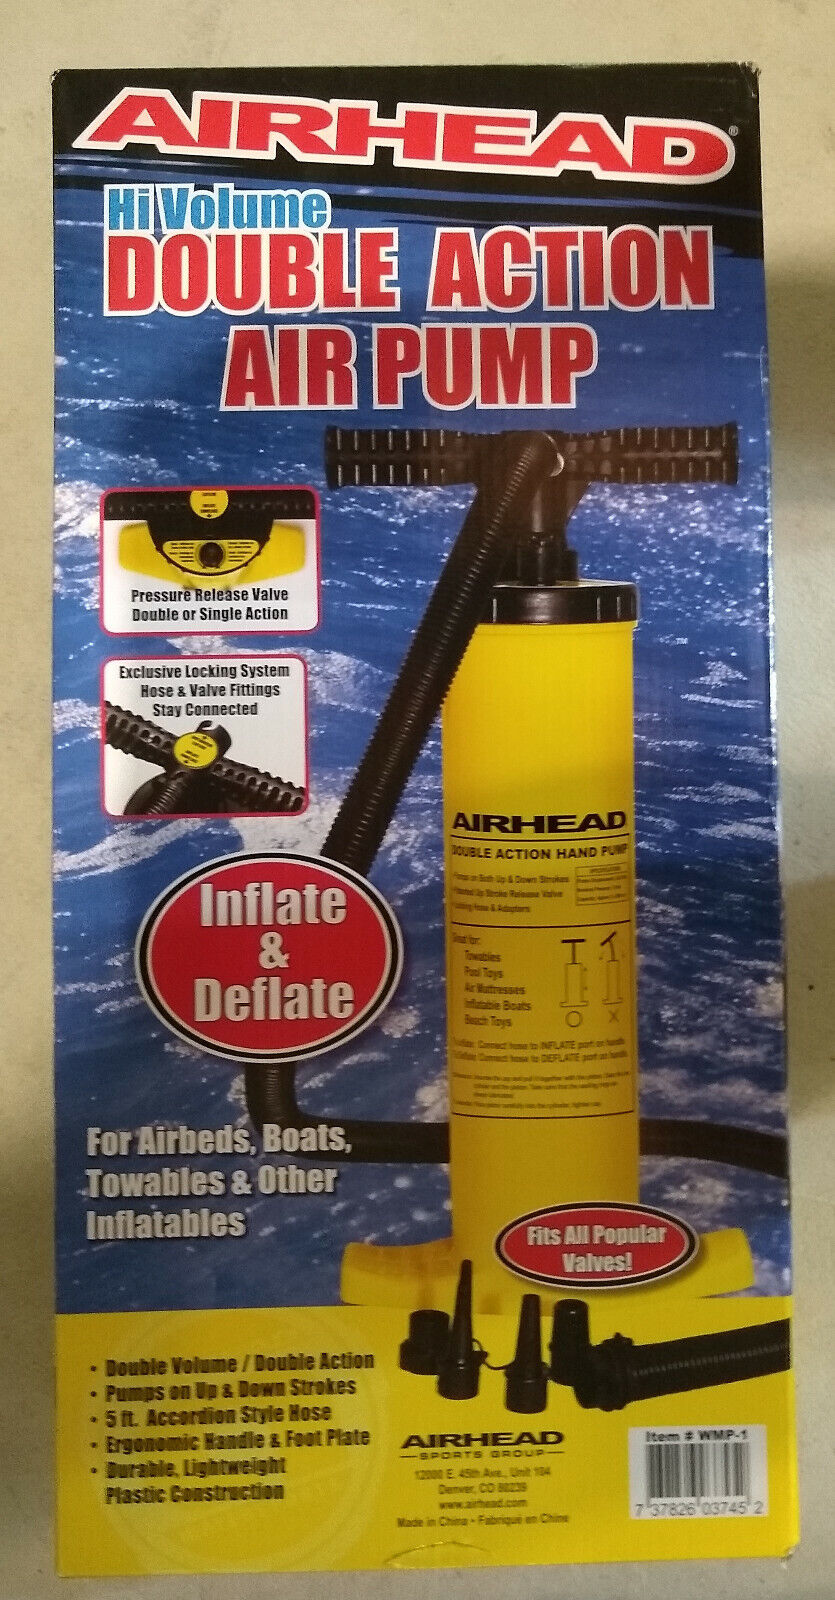 AIRHEAD - HI VOLUME DOUBLE ACTION AIR PUMP FOR AIRBEDS, BOAT